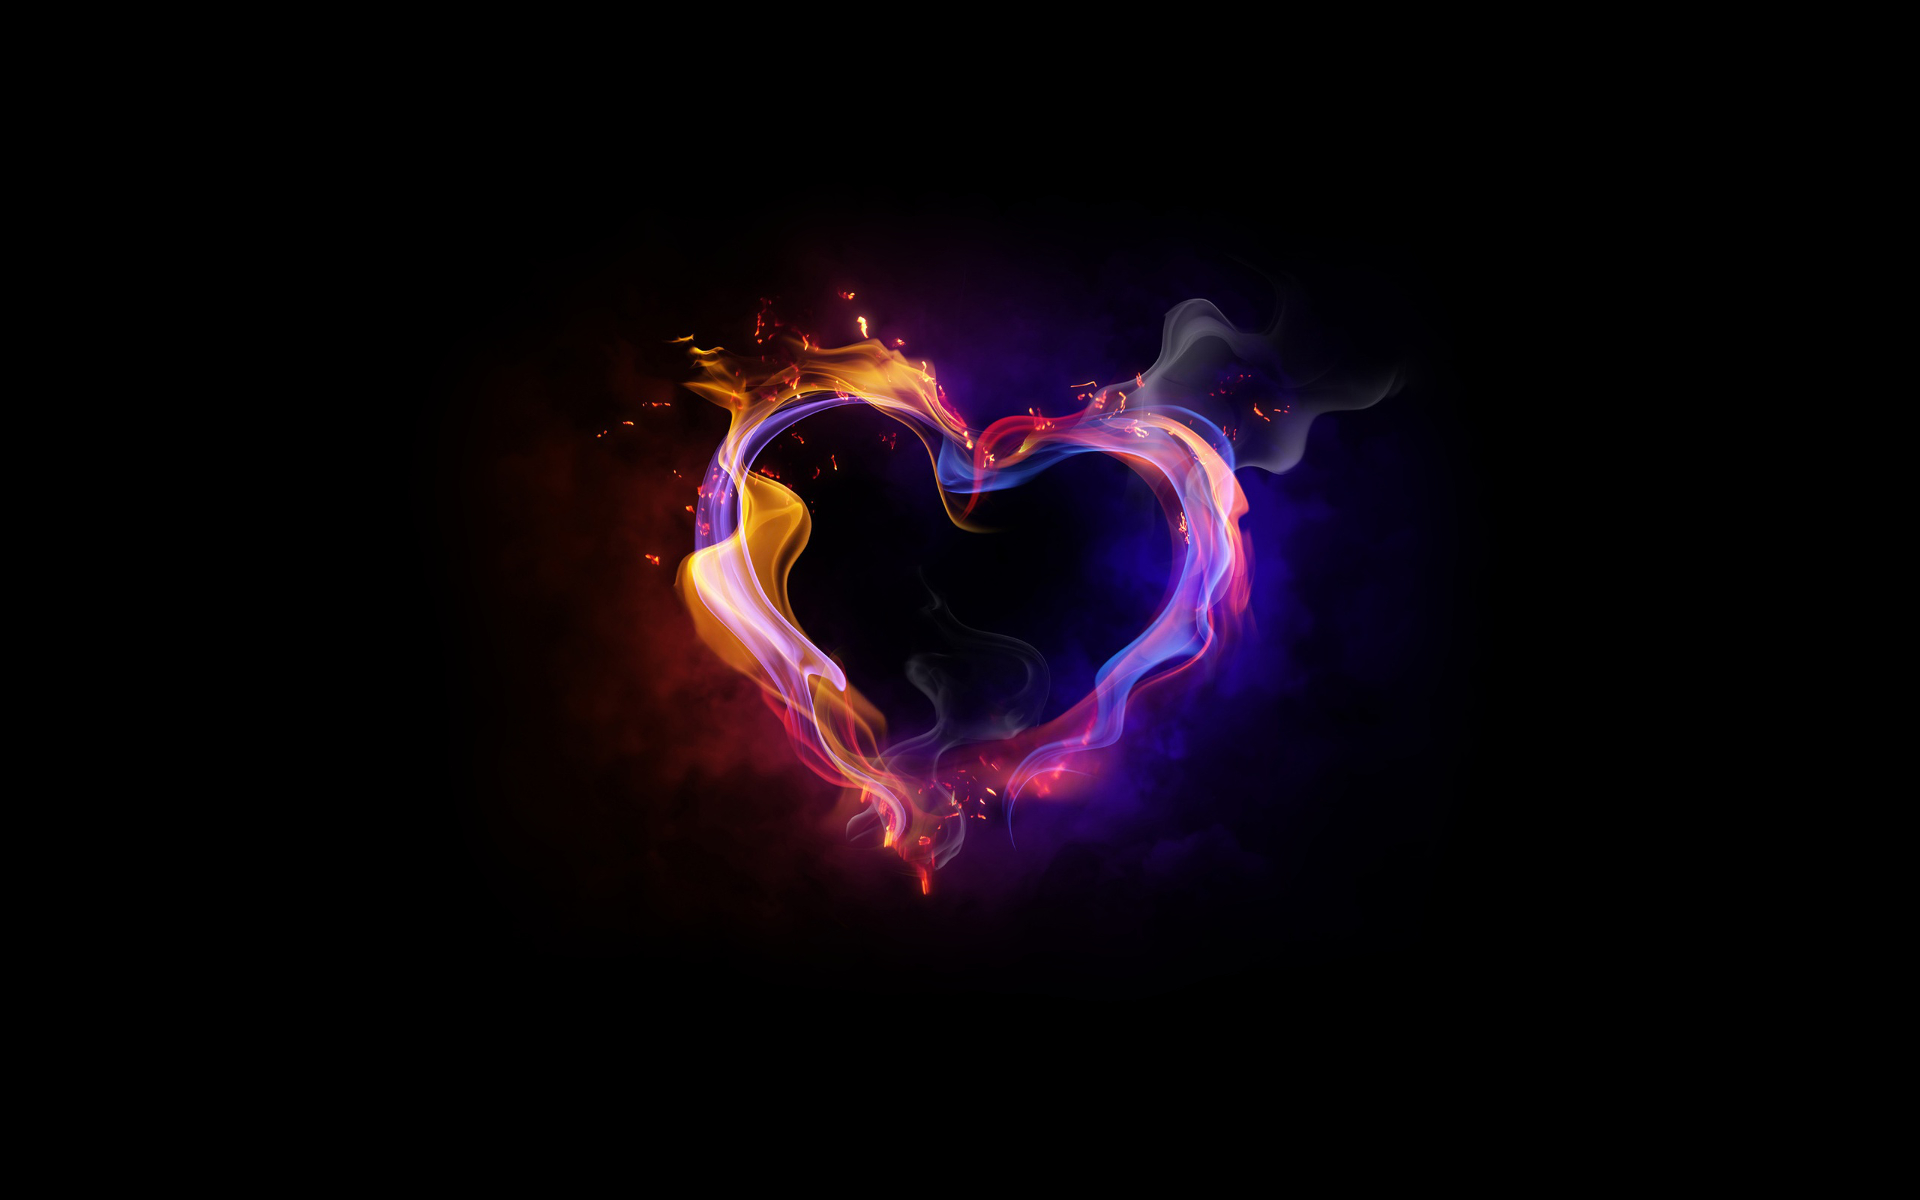 Love computer Wallpapers, Desktop Backgrounds 2560x1600 ID:102815